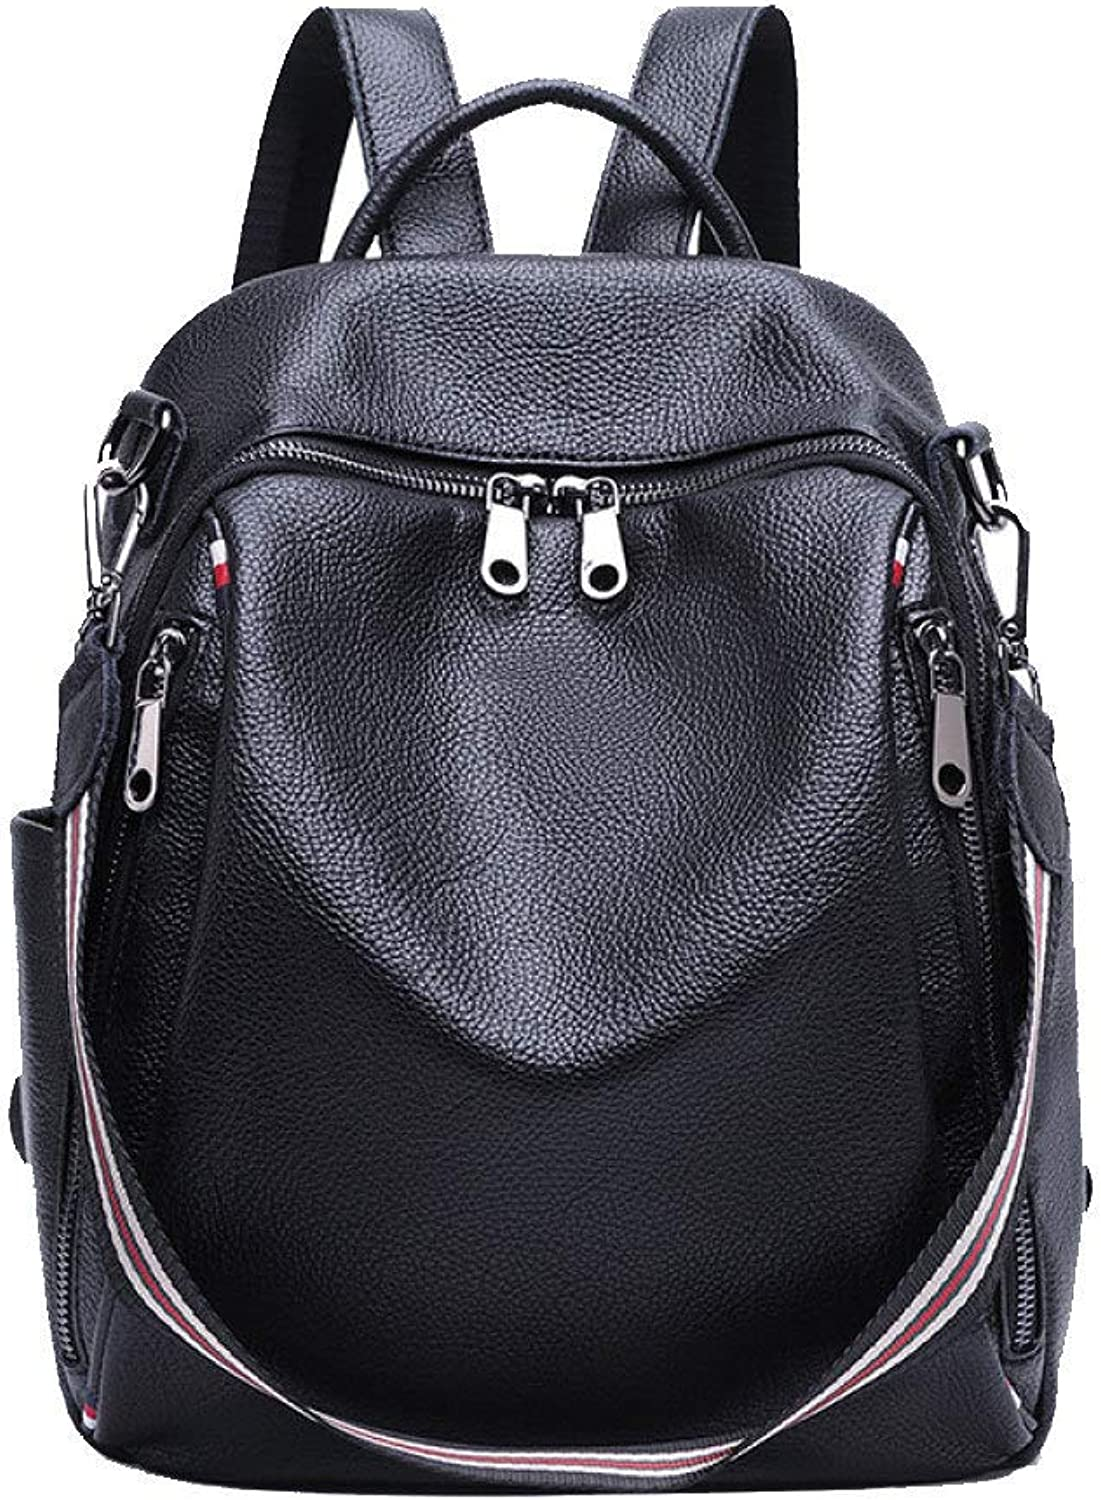 c3cf070e8 Bag for Women's MultiFunction Backpack Female College Wind Wild Shoulder  Crossbody Bag Casual LargeCapacity Travel Bag